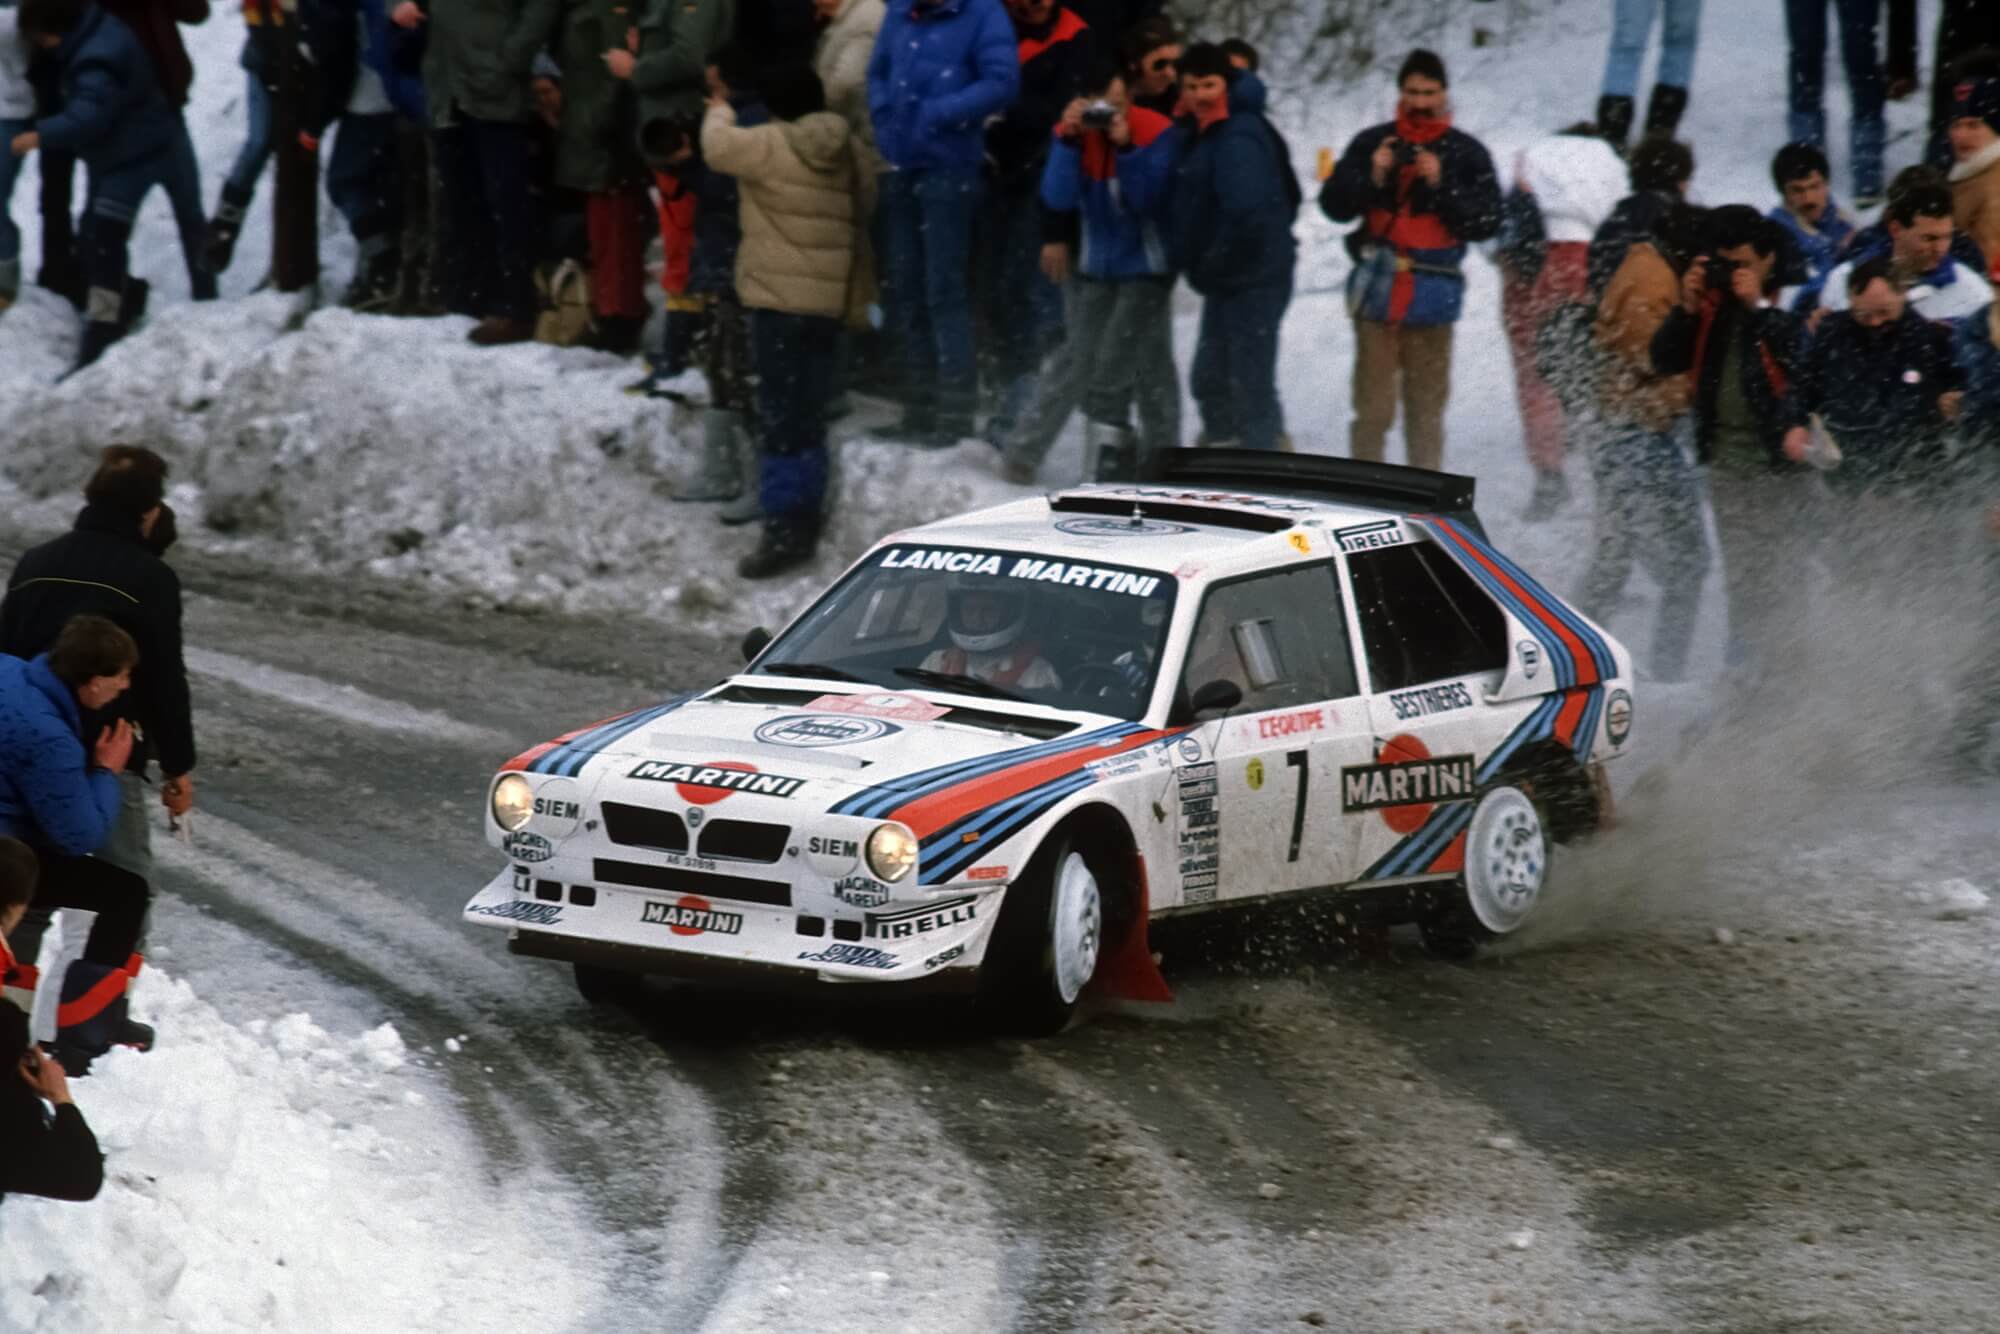 This Lancia Delta S4 Is A Ballet Of Brutality - YouTube